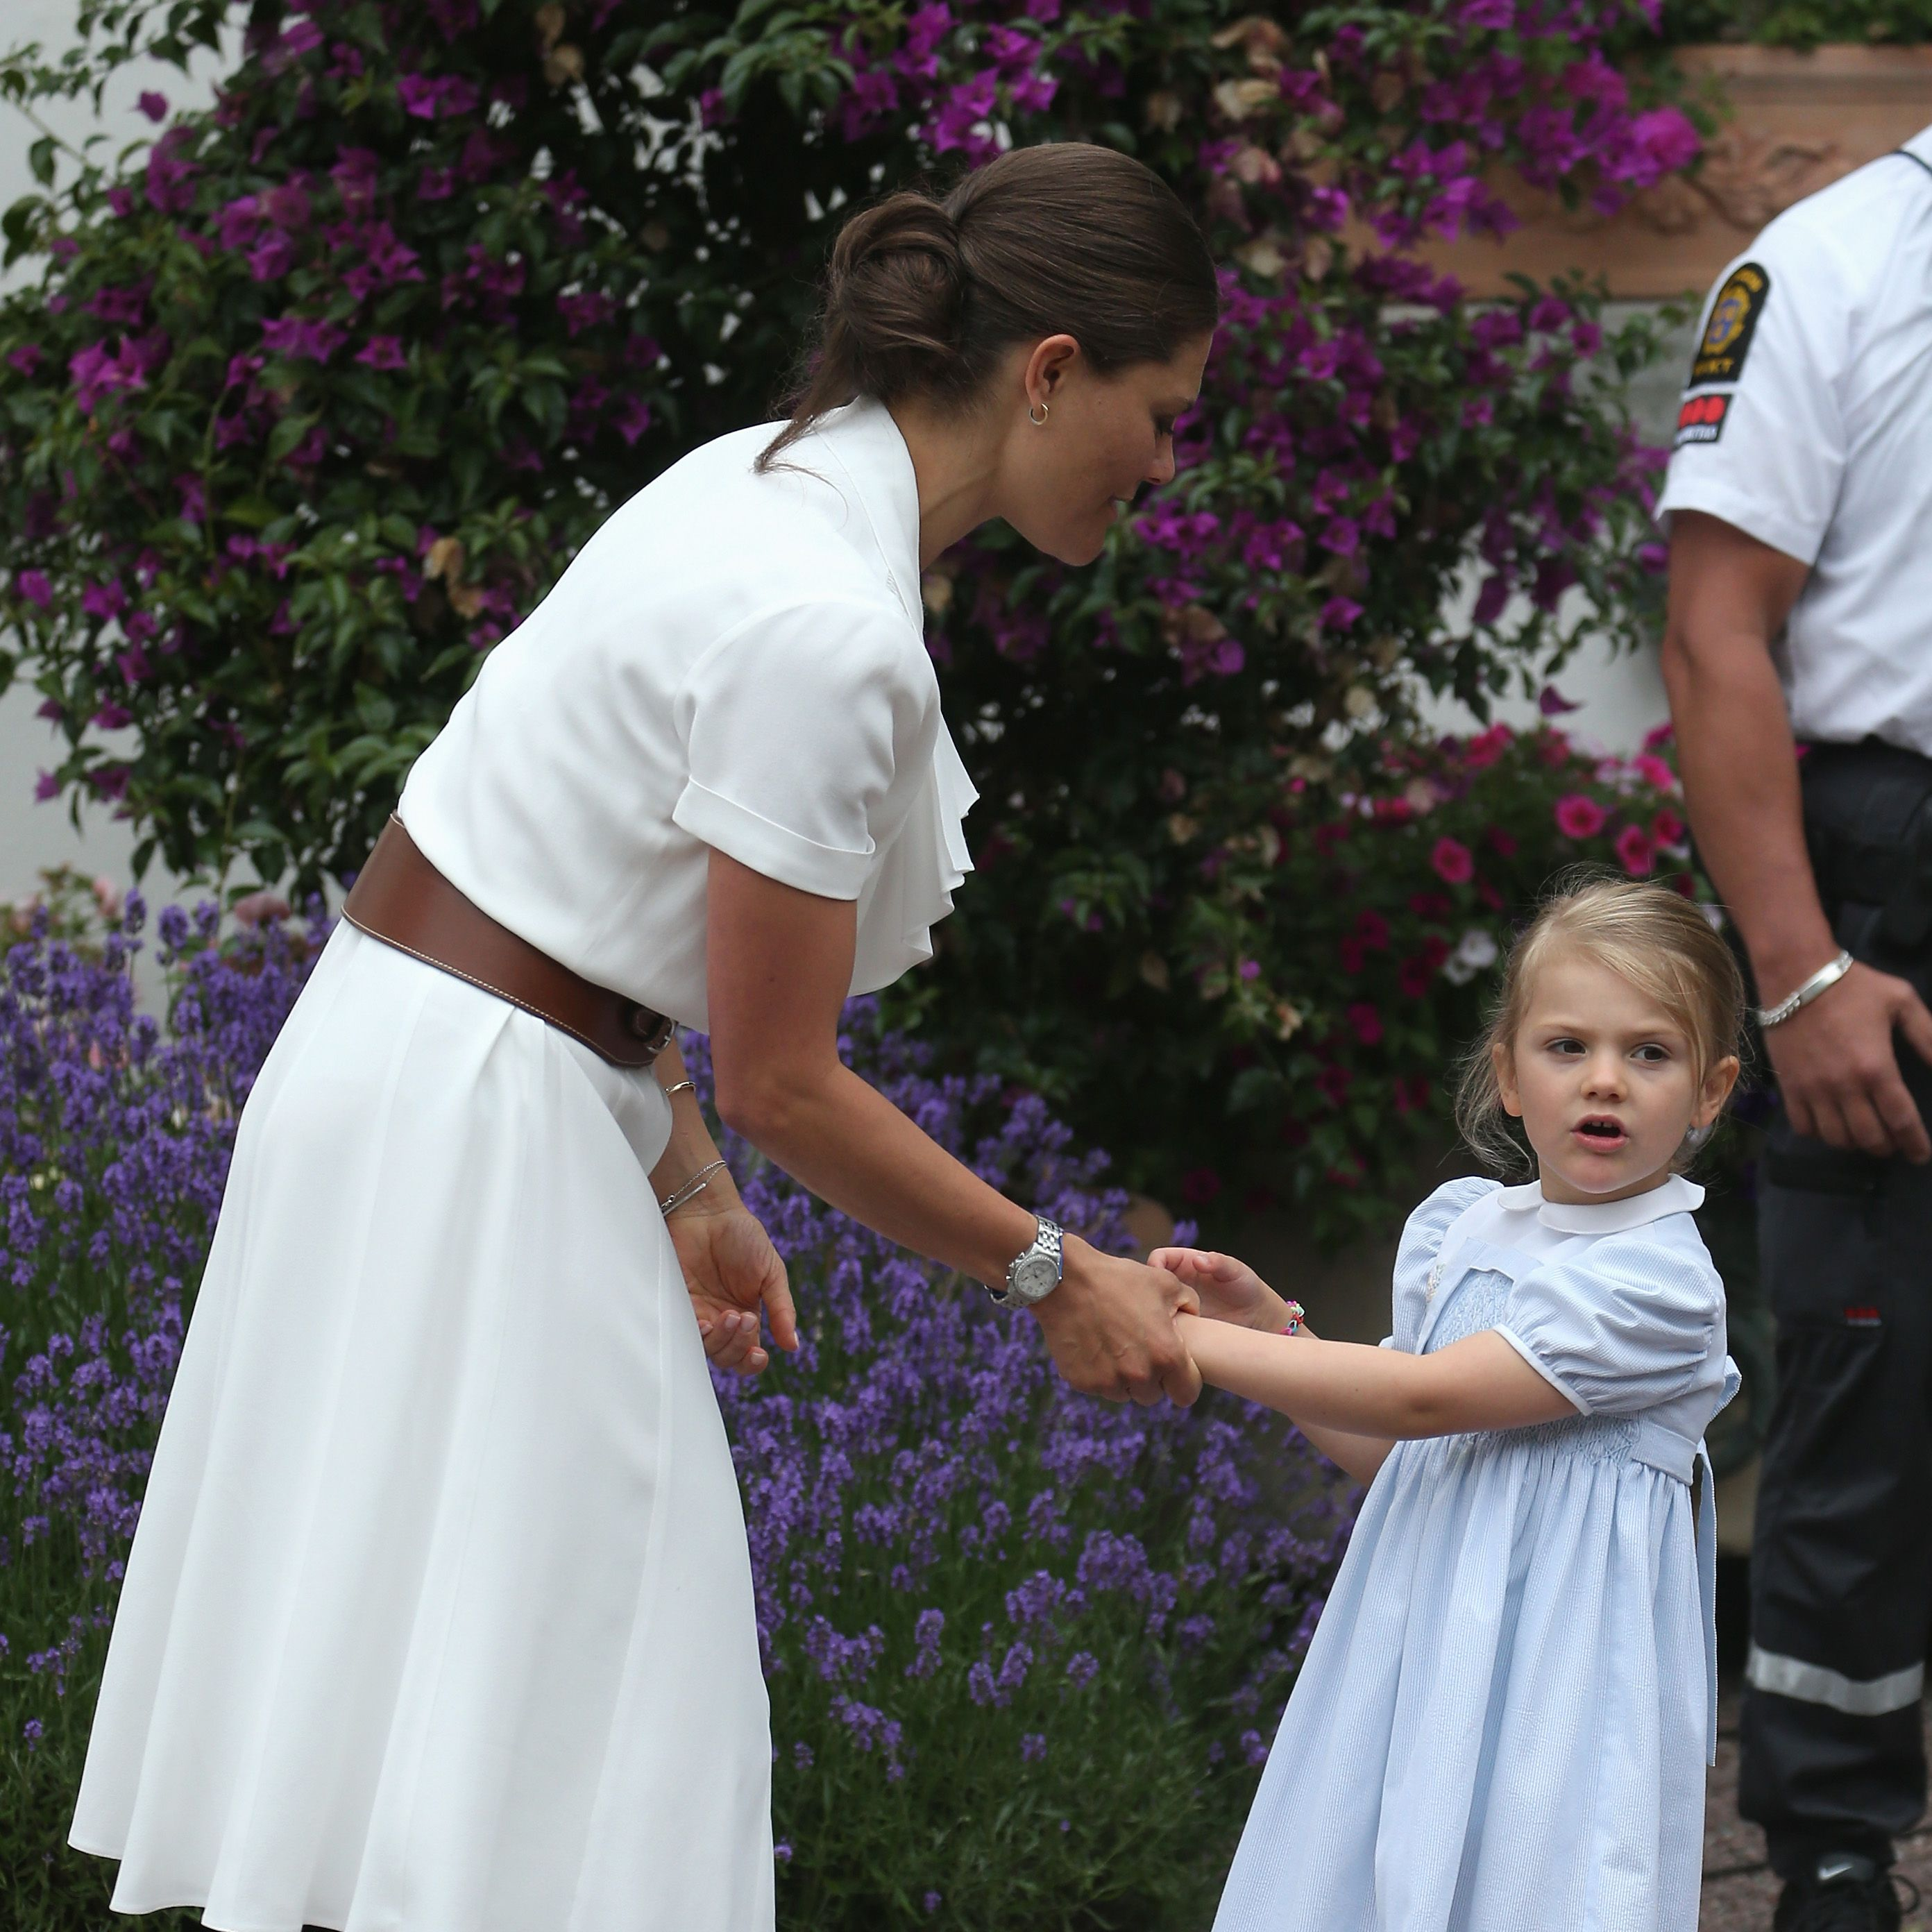 """<p>Princess Victoria is the eldest daughter of King Carl XVI Gustaf and&nbsp&#x3B;the heir apparent to the throne. The 39-year old is pictured here with her daughter, Princess Estelle, wearing&nbsp&#x3B;a summery dress by Ralph Lauren. <span class=""""redactor-invisible-space"""" data-verified=""""redactor"""" data-redactor-tag=""""span"""" data-redactor-class=""""redactor-invisible-space""""></span></p>"""